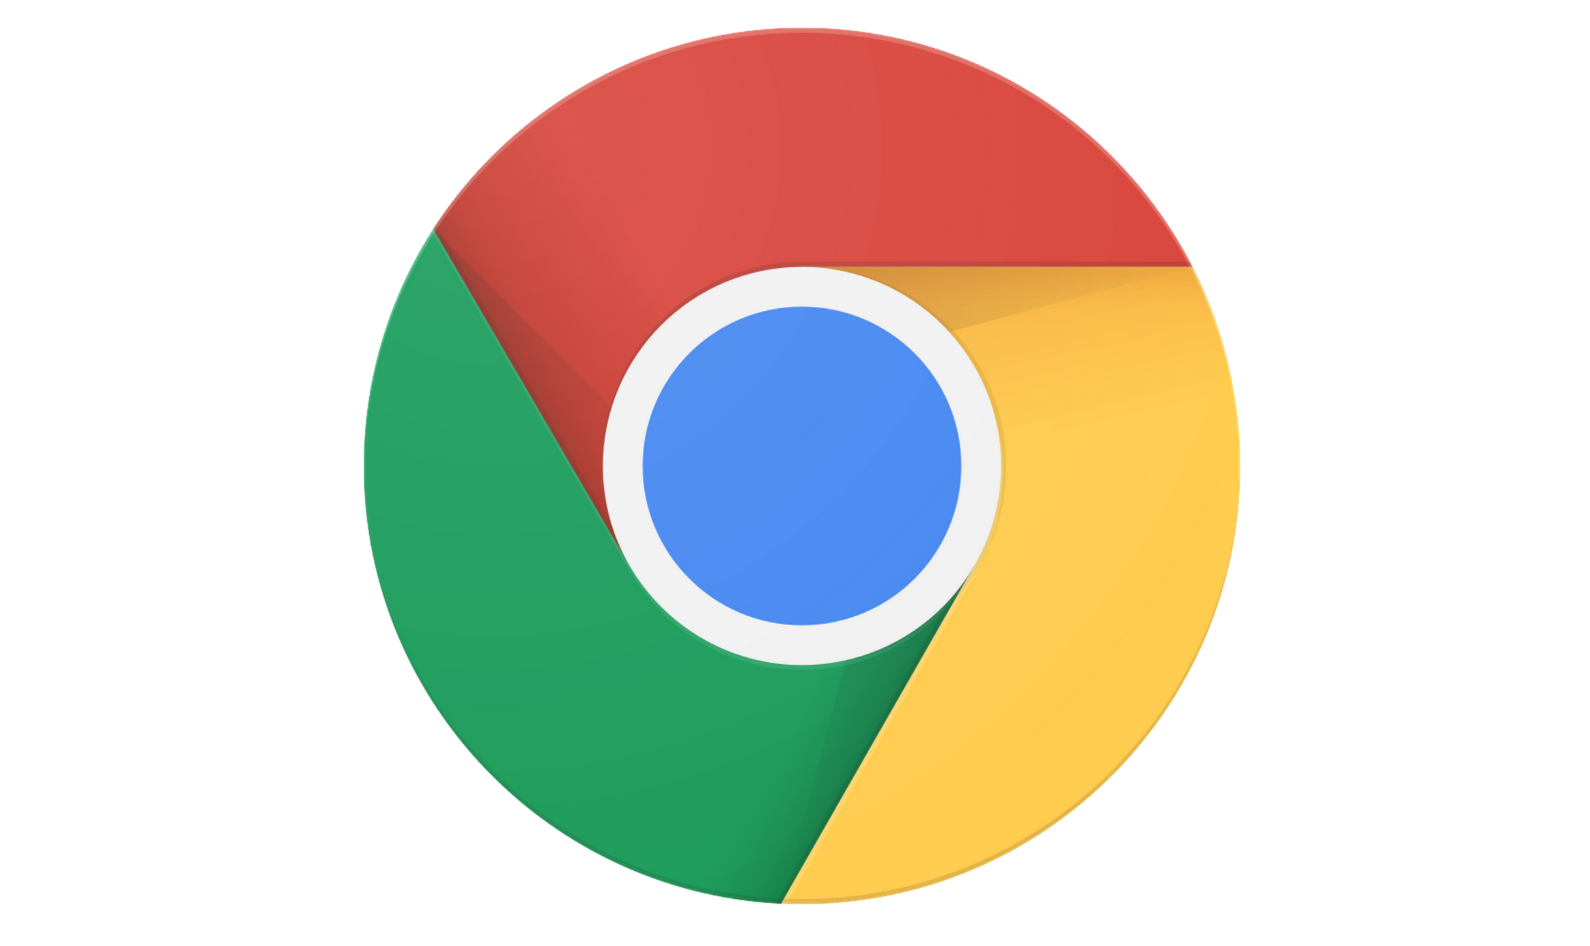 How To Return To Chrome's Old Look (And Fix The Blurry Text On Windows)